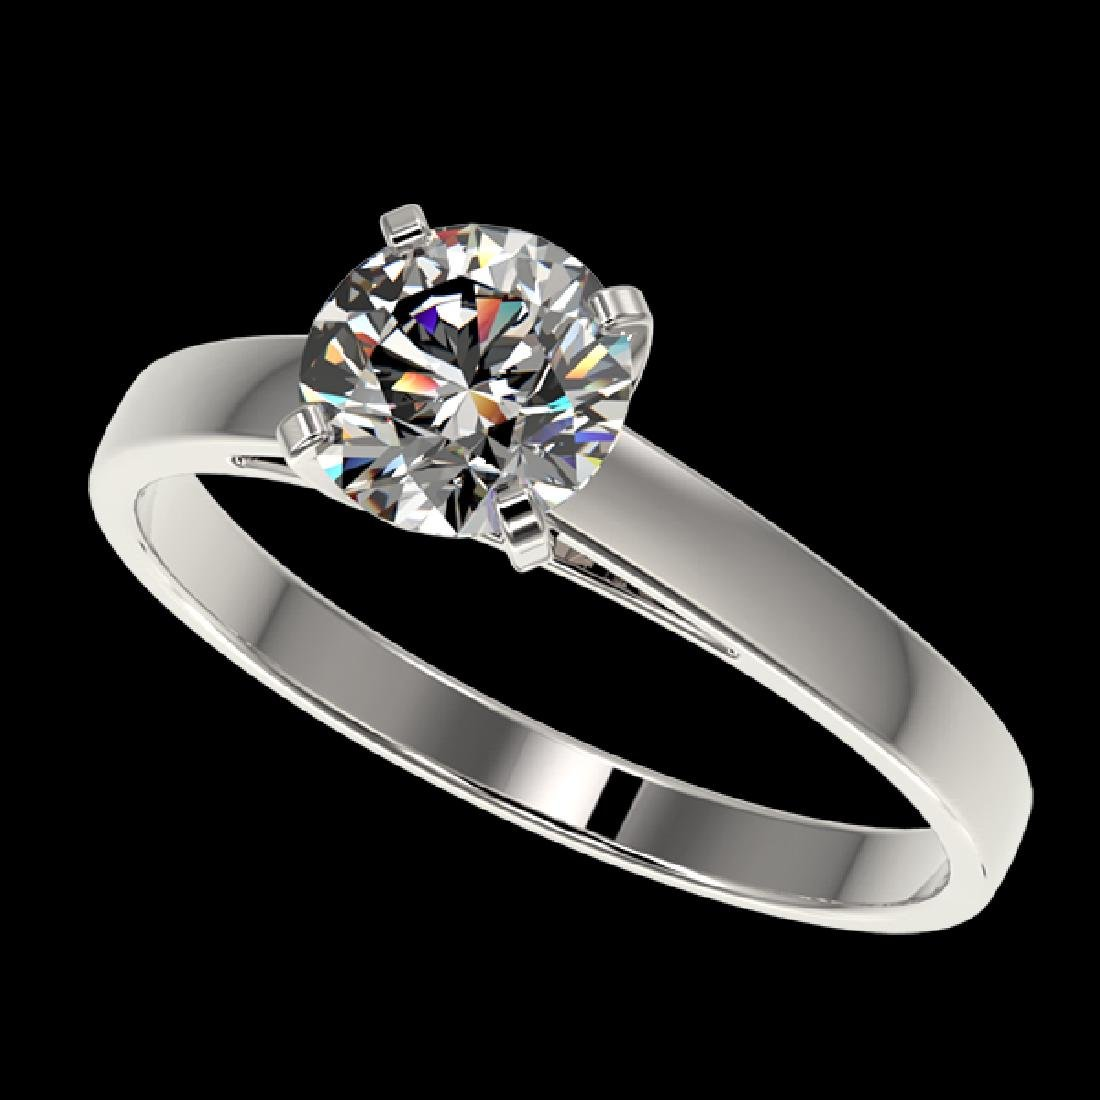 0.99 CTW Certified G-Si Quality Diamond Solitaire